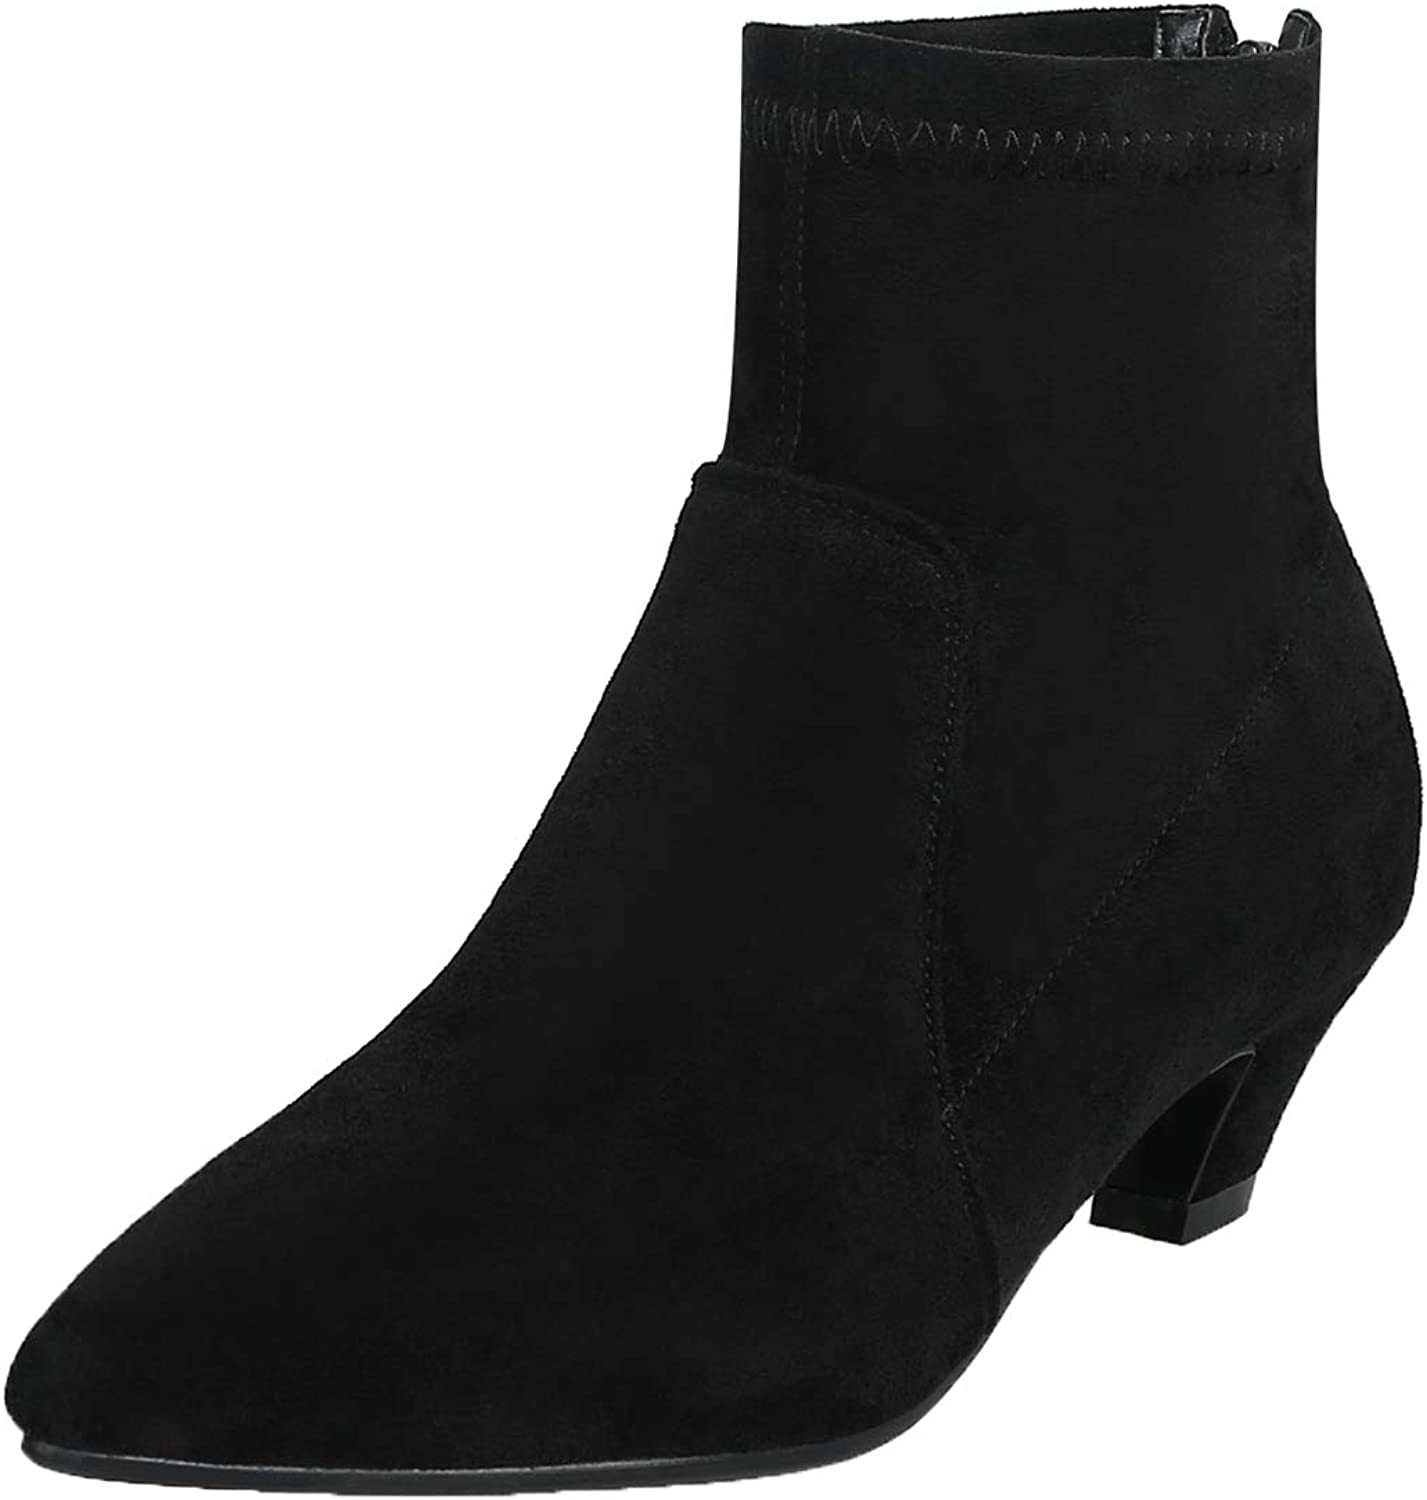 Vitalo Womens Low Heel Pointed Toe Ankle Boots Zip Up Faux Suede Short Booties